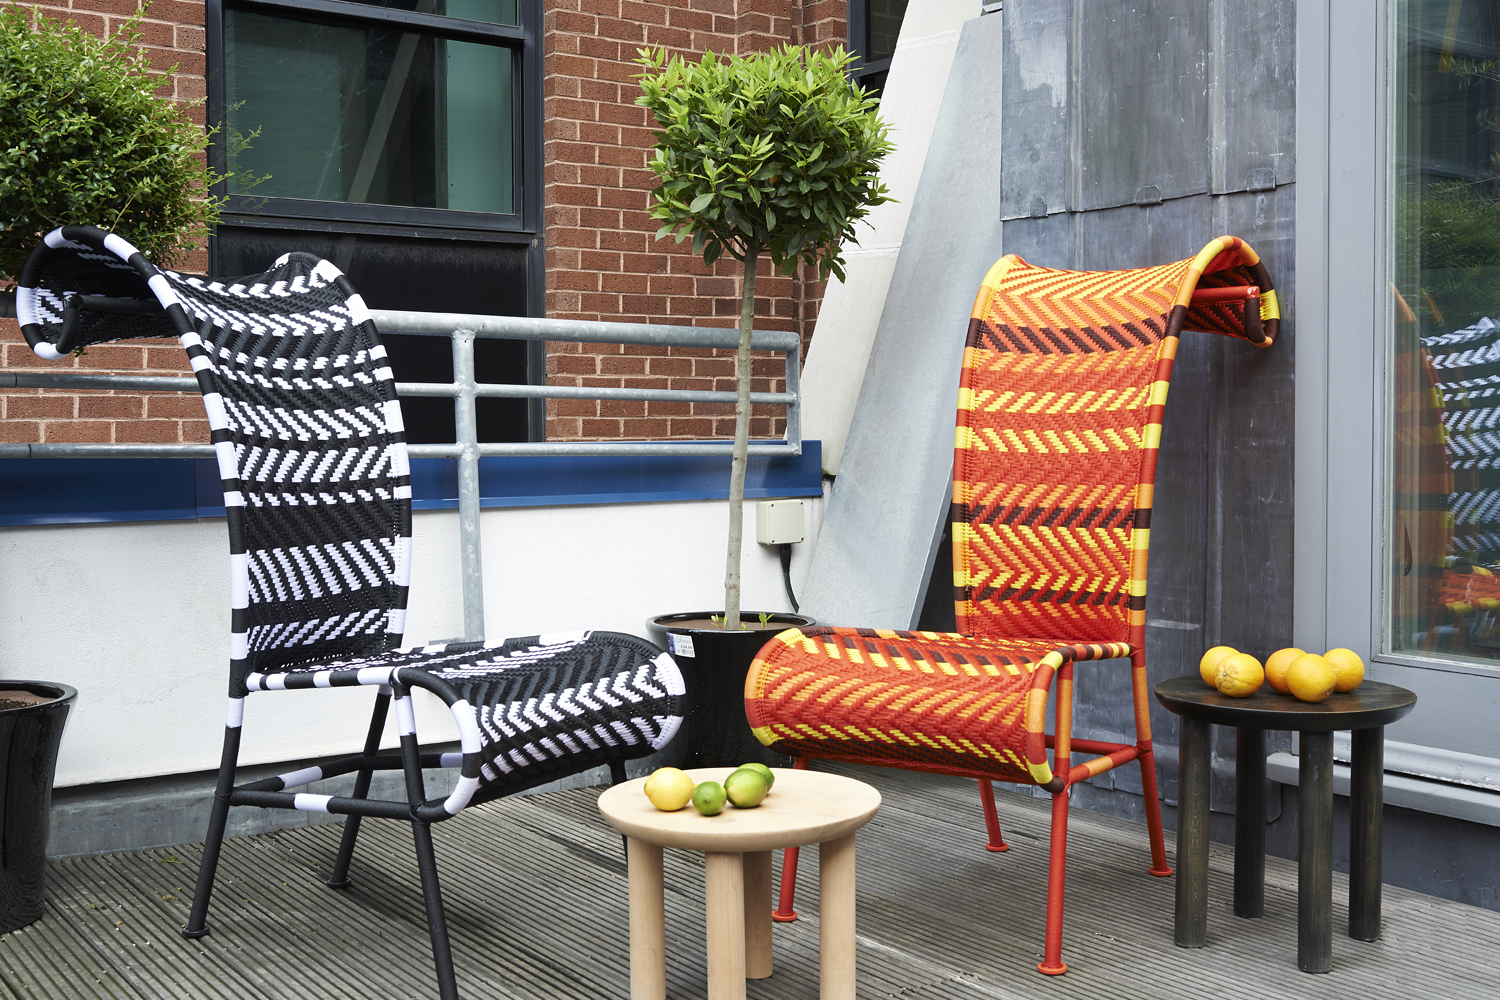 Library_Roof_Bar_Chair_Wall_JamieSmith-031.jpg